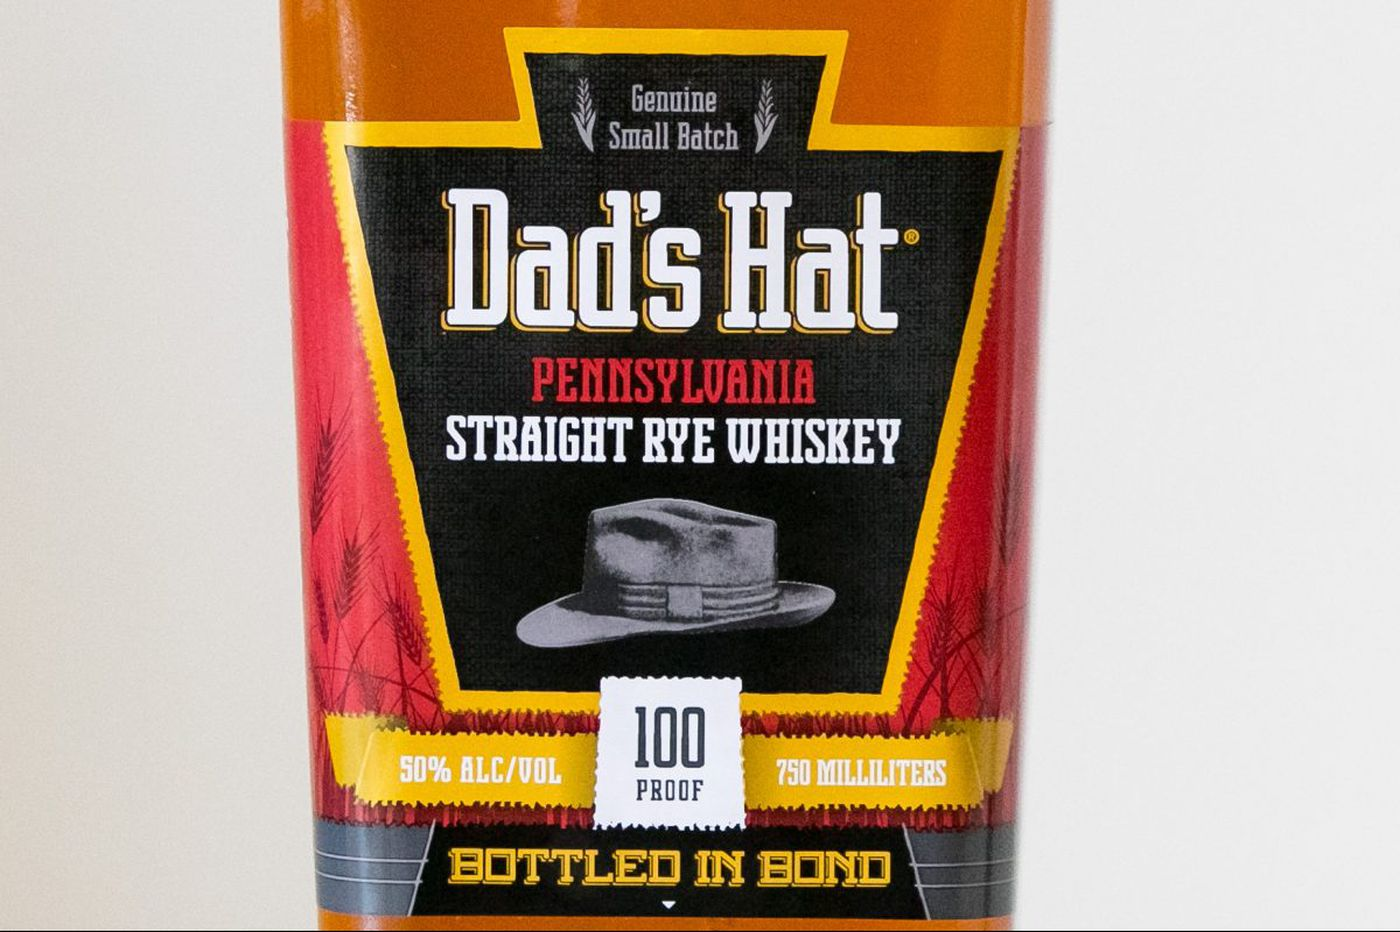 Dad's Hat, bottled in bond, and getting better with age